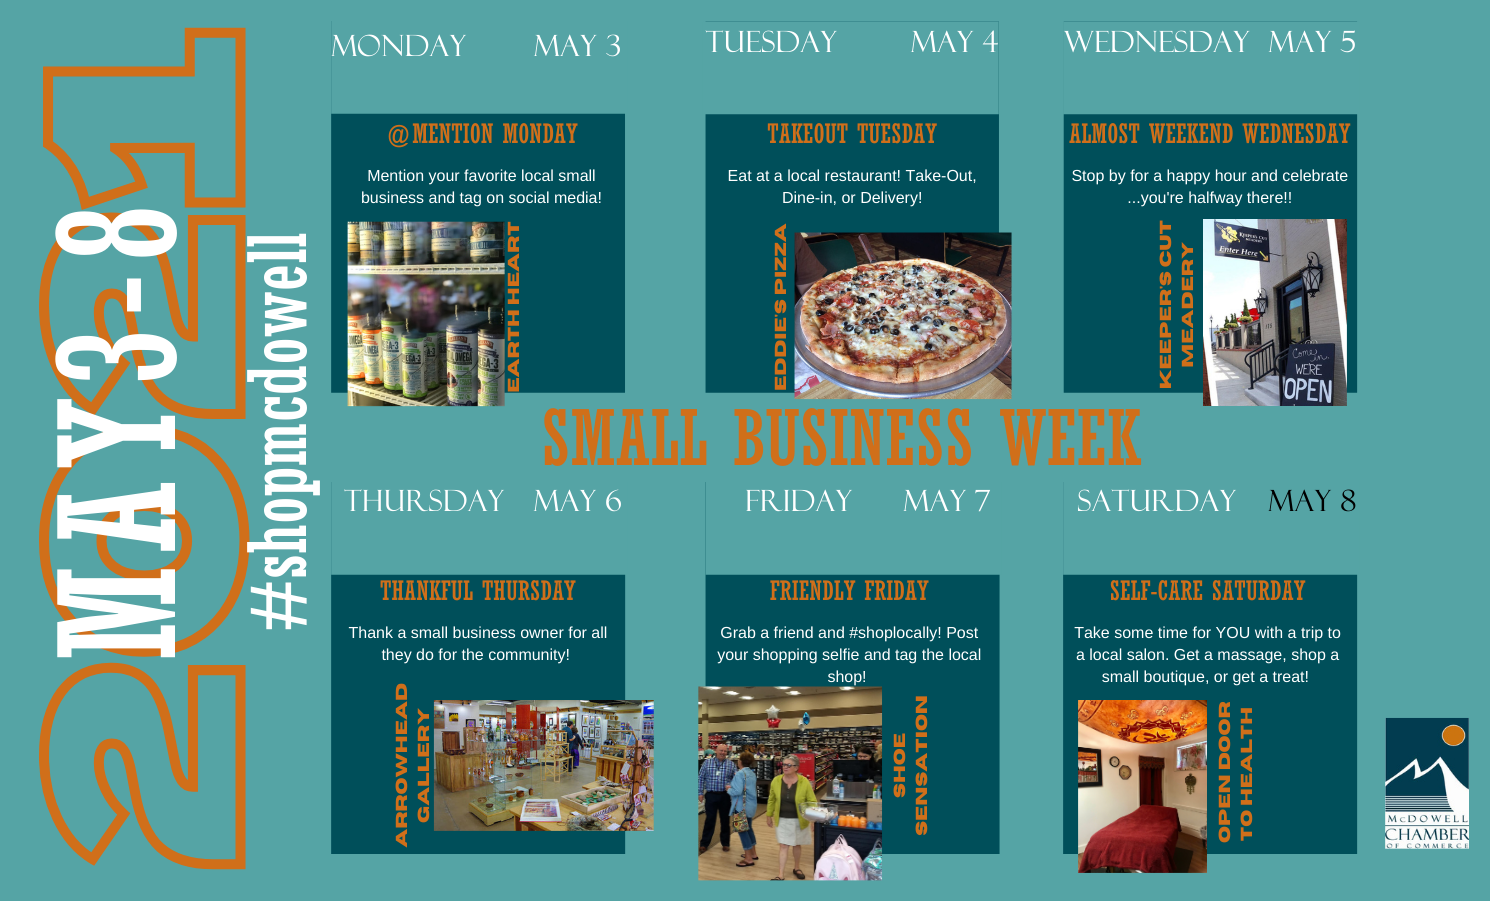 National Small Business Week May 3-9, 2021